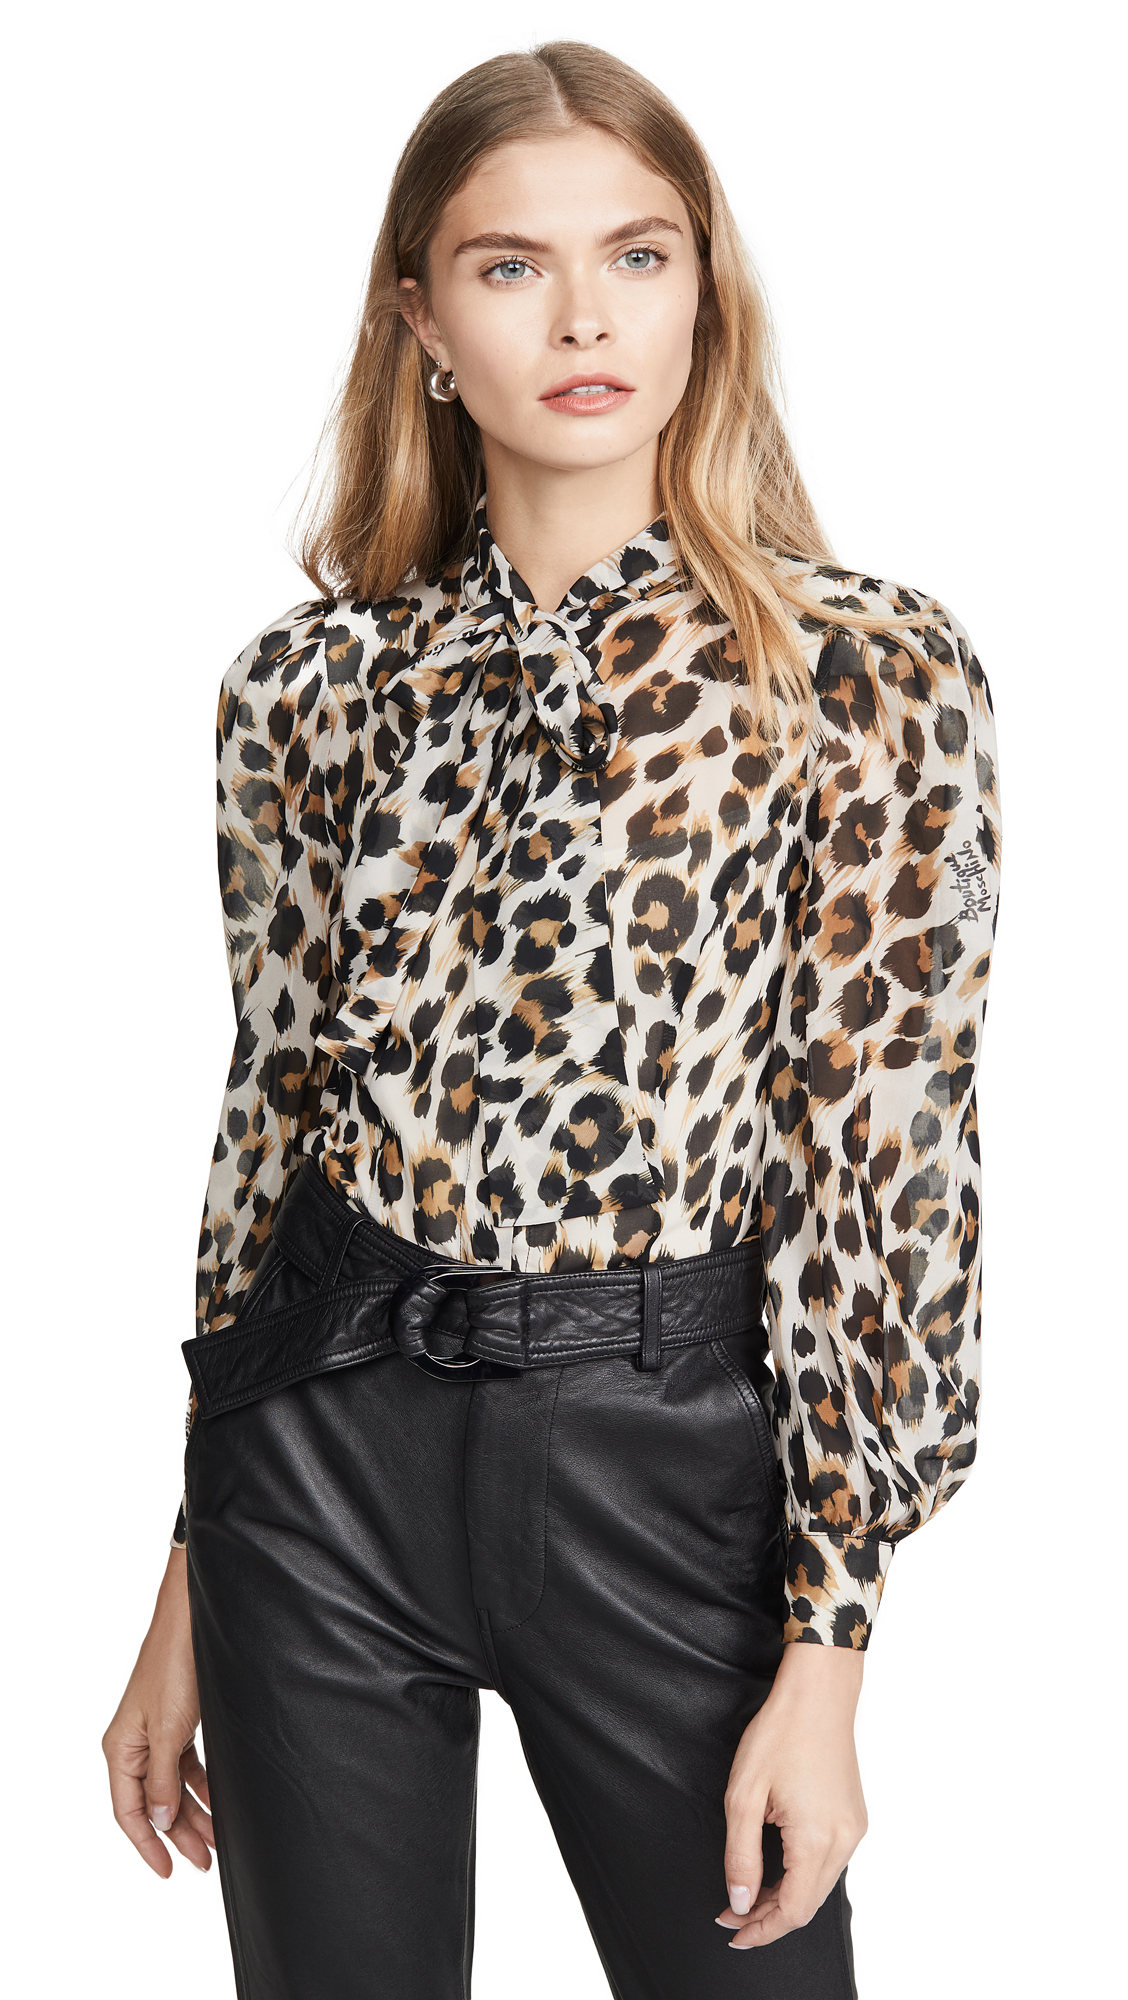 Boutique Moschino Leopard Blouse - Fantasy Print Ivory